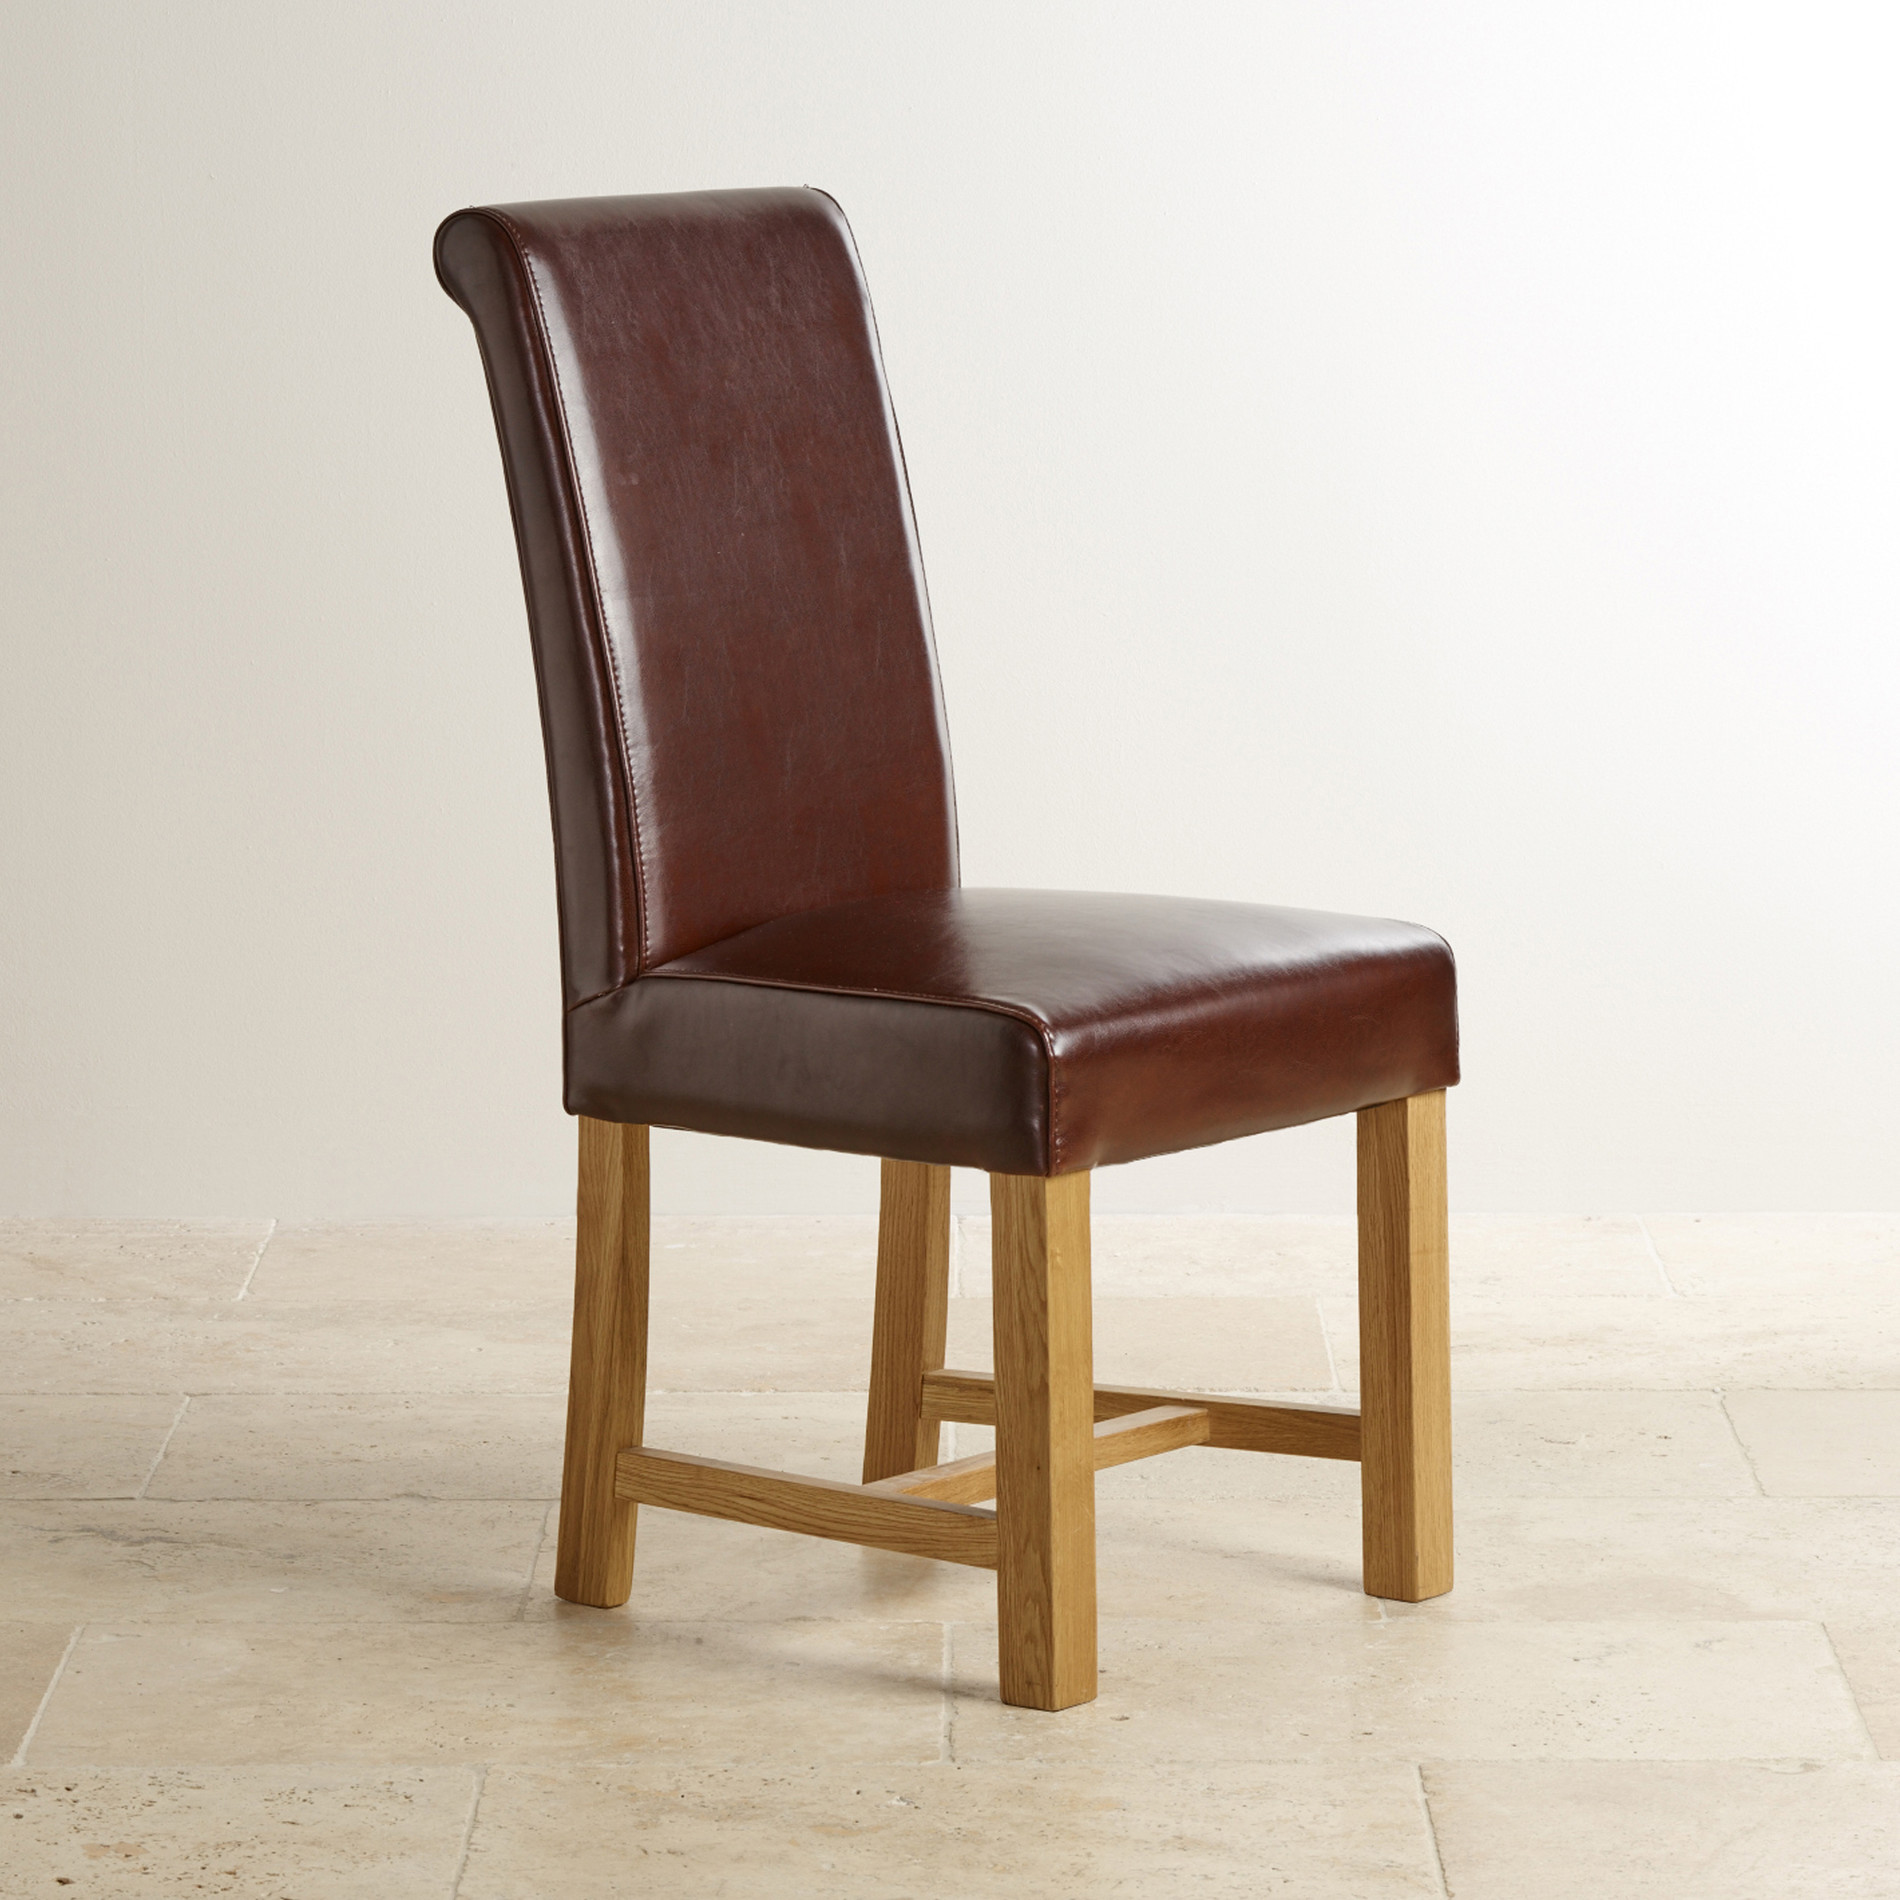 Best ideas about Leather Dining Chair . Save or Pin Brown Leather Dining Chair with Braced Oak Legs Now.